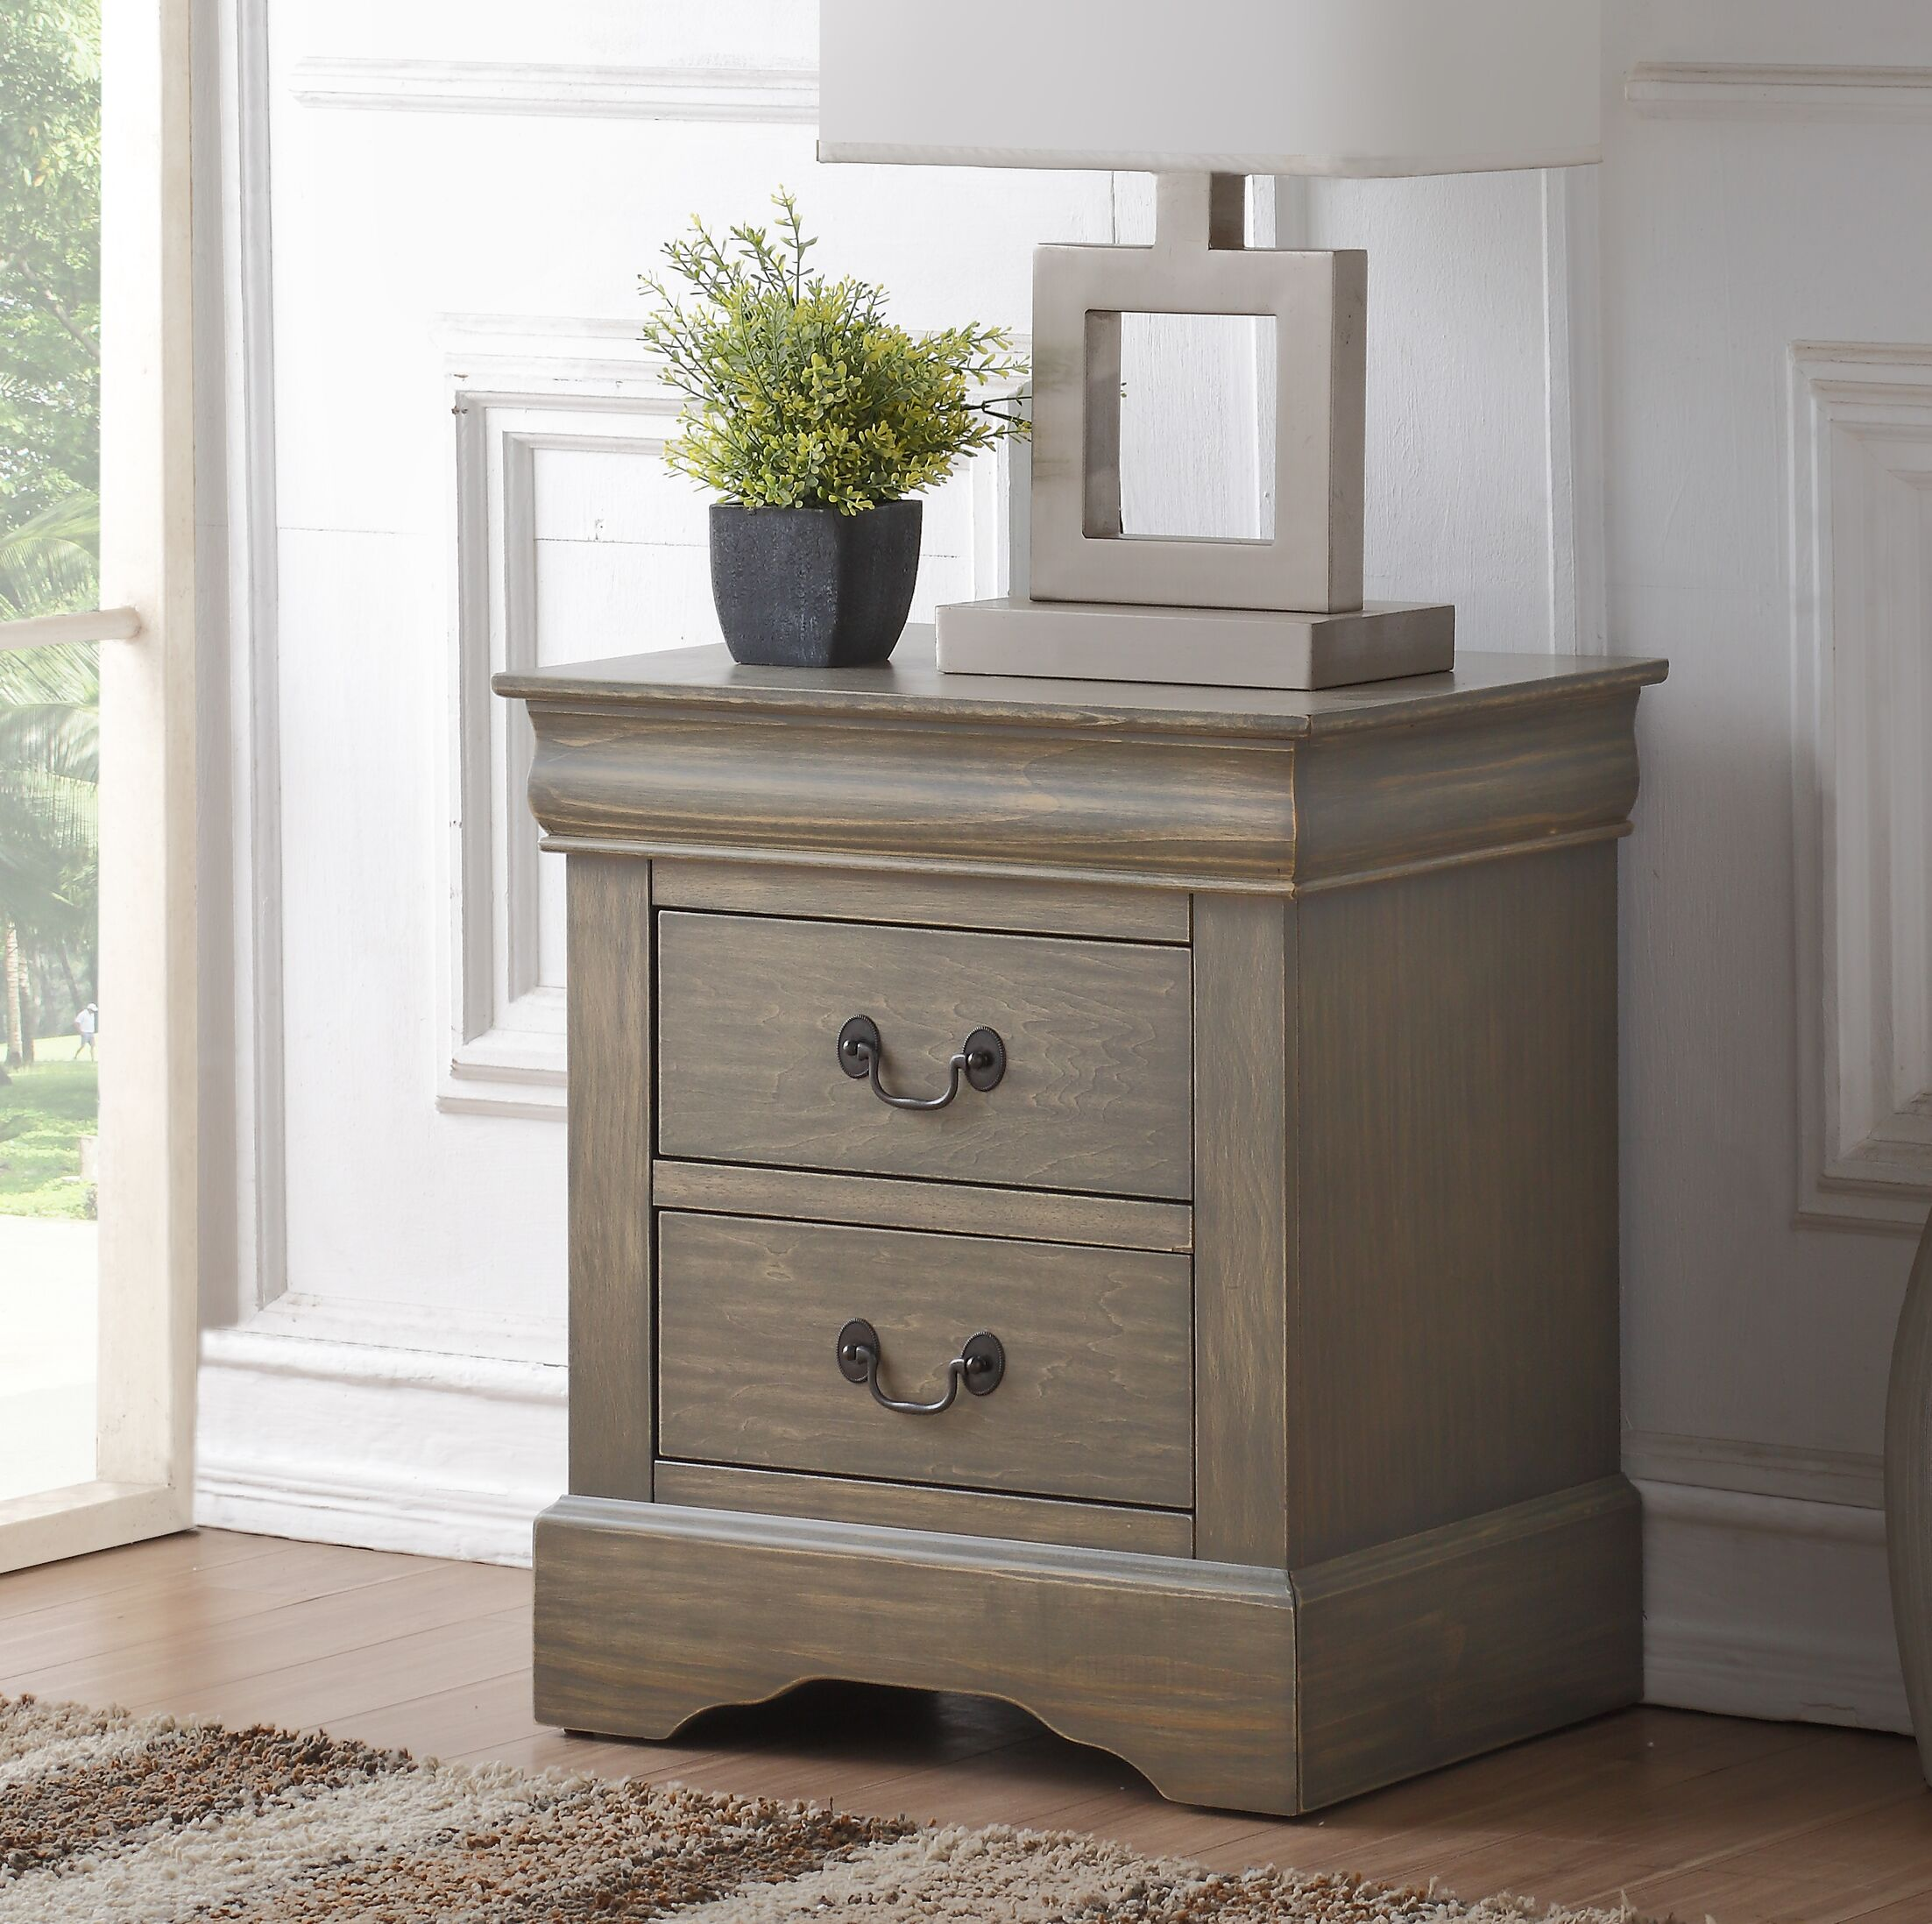 Whispering Pines 2 Drawer Nightstand Color: Antique Gray